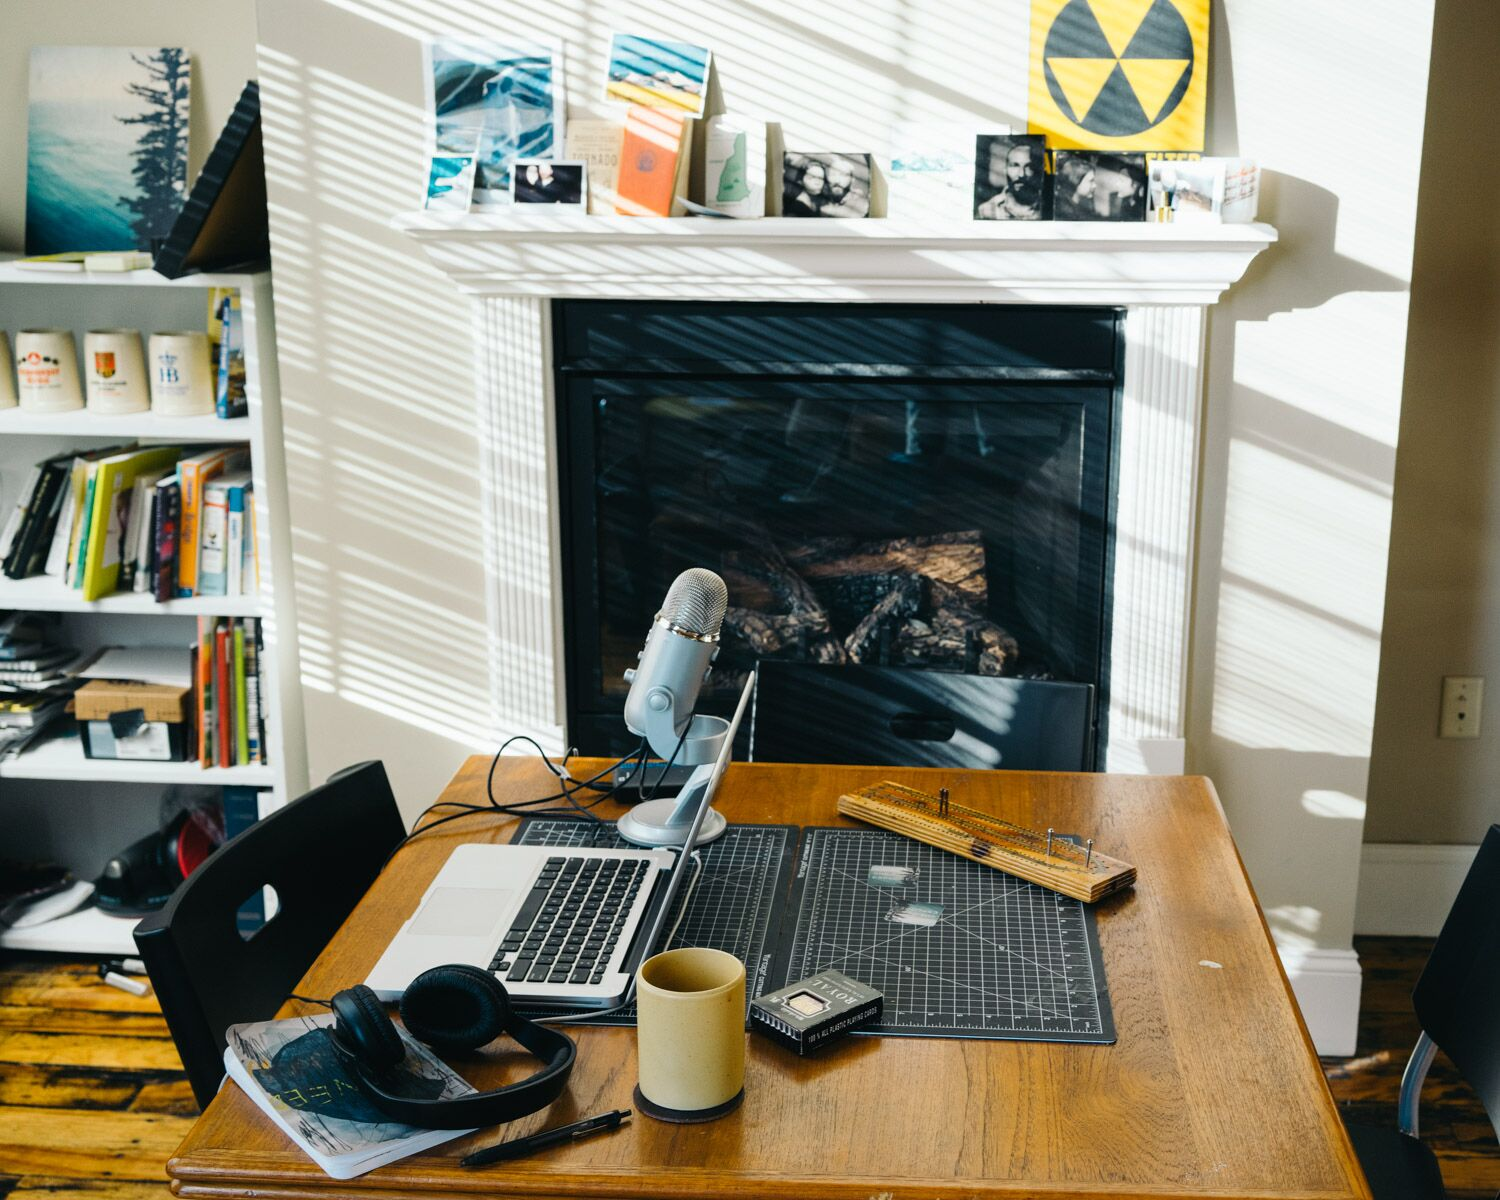 Gale Straub's Podcasting Space